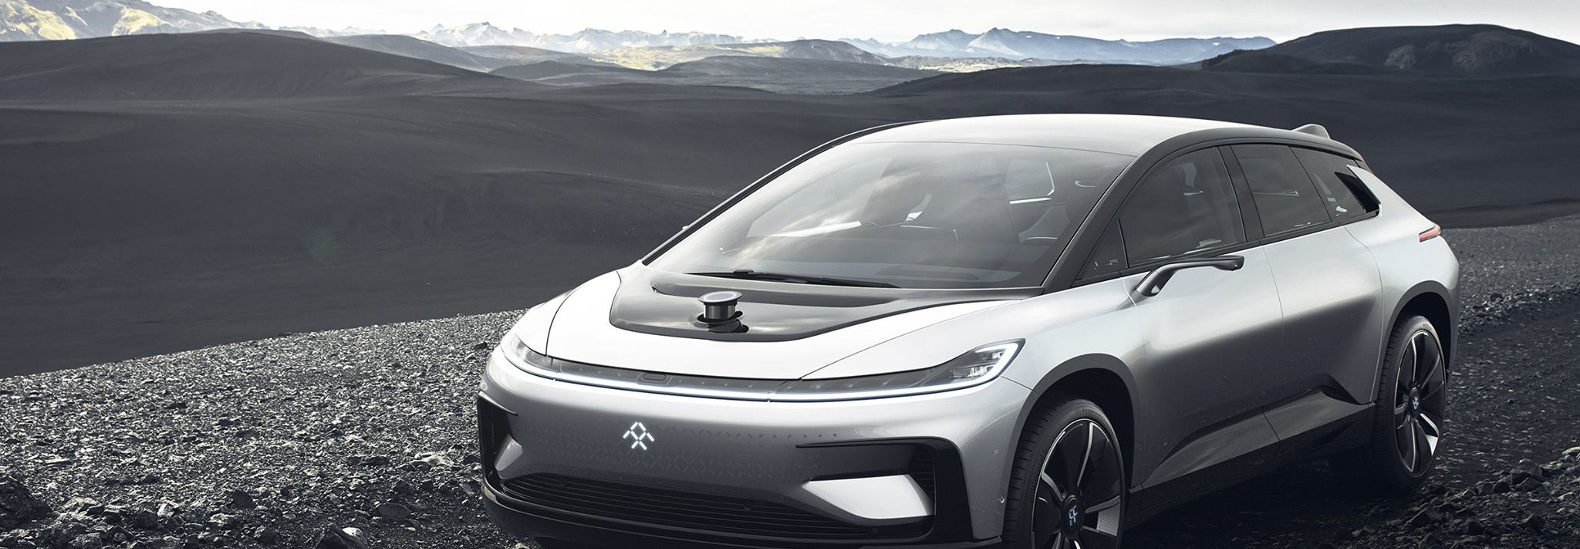 Faraday Future S Ff91 Smashes Sd Record Of Tesla Model In Ludicrous Mode